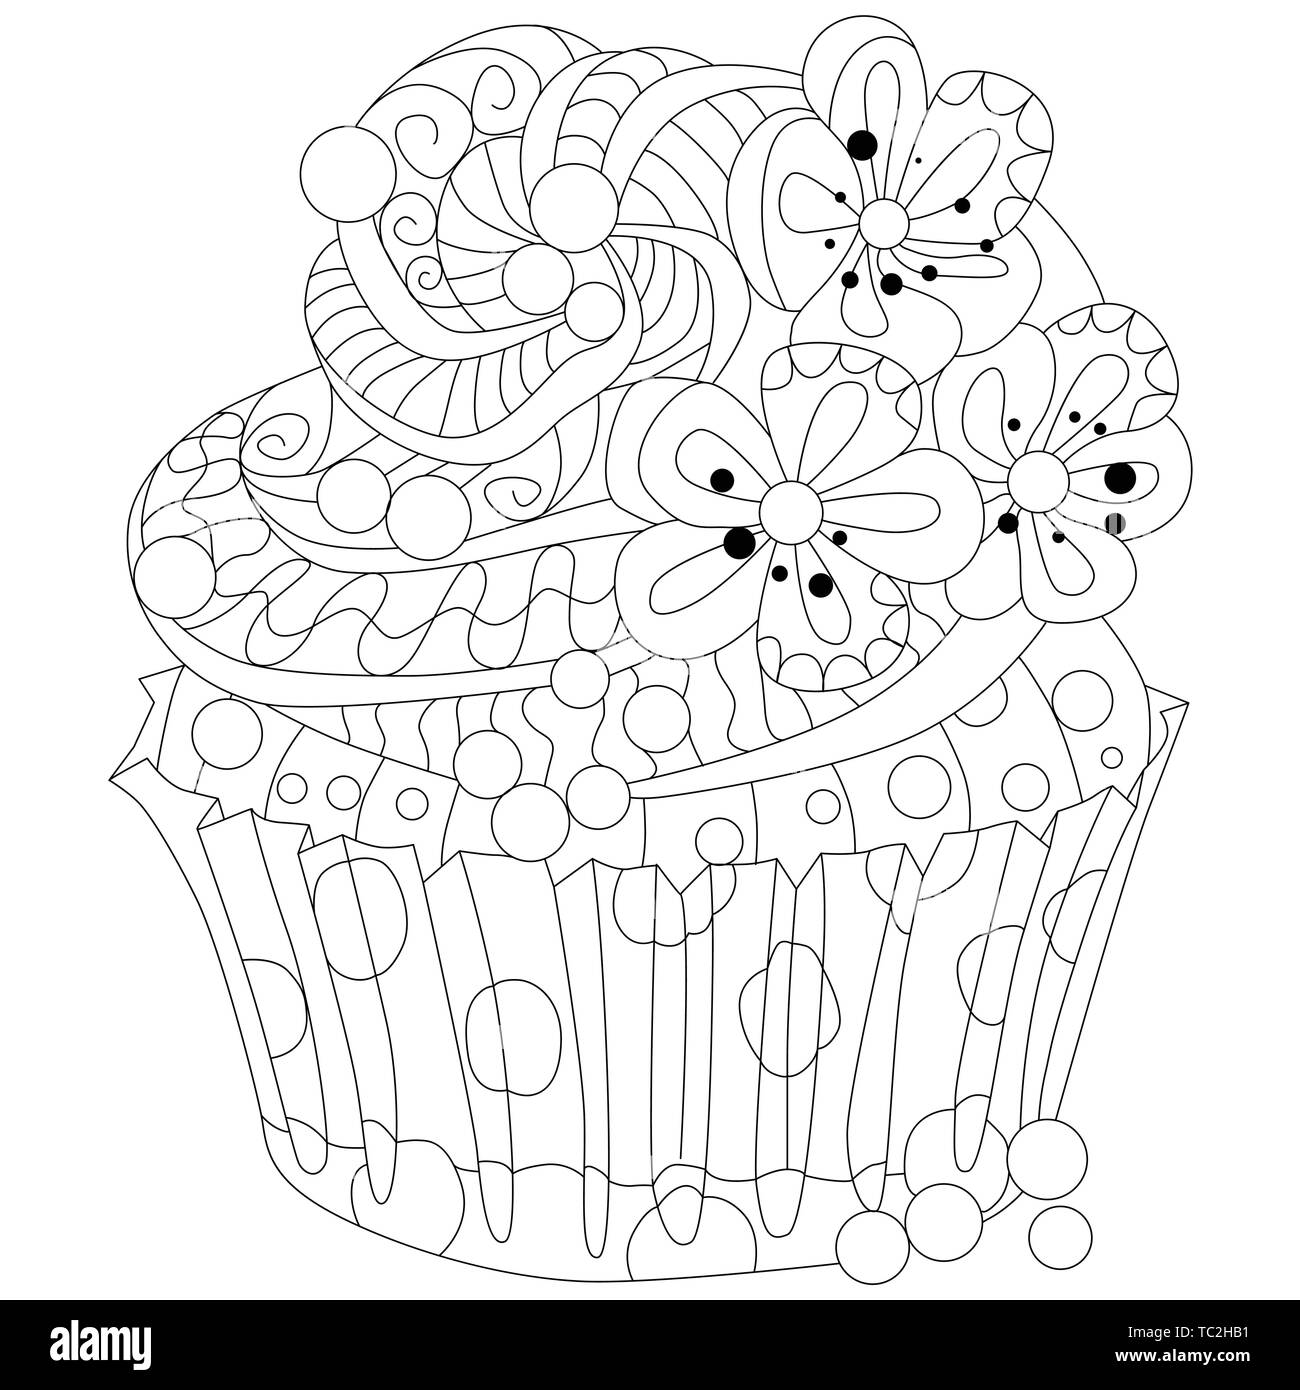 Vector piece of cake with abstract ornaments. Hand drawn illustration for coloring book for adult in zentangle, doodle style. Coloring pages. - Stock Image